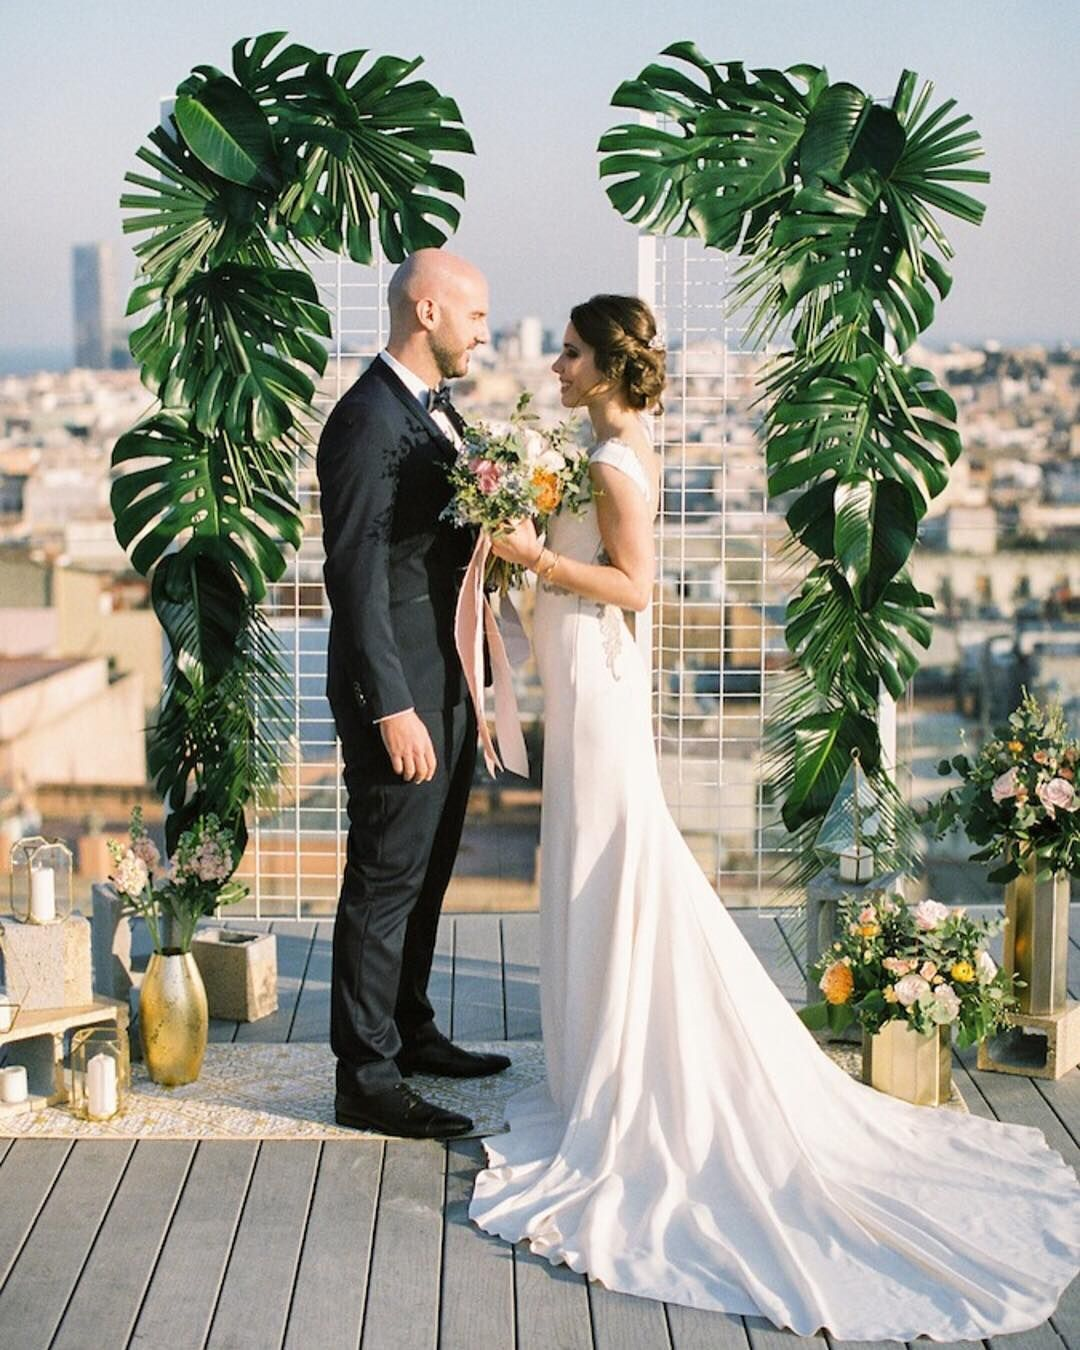 Wedding Backdrops That Are Gorgeous Af A Practical Wedding Wedding Ceremony Backdrop Wedding Ceremony Backdrop Diy Wedding Backdrop